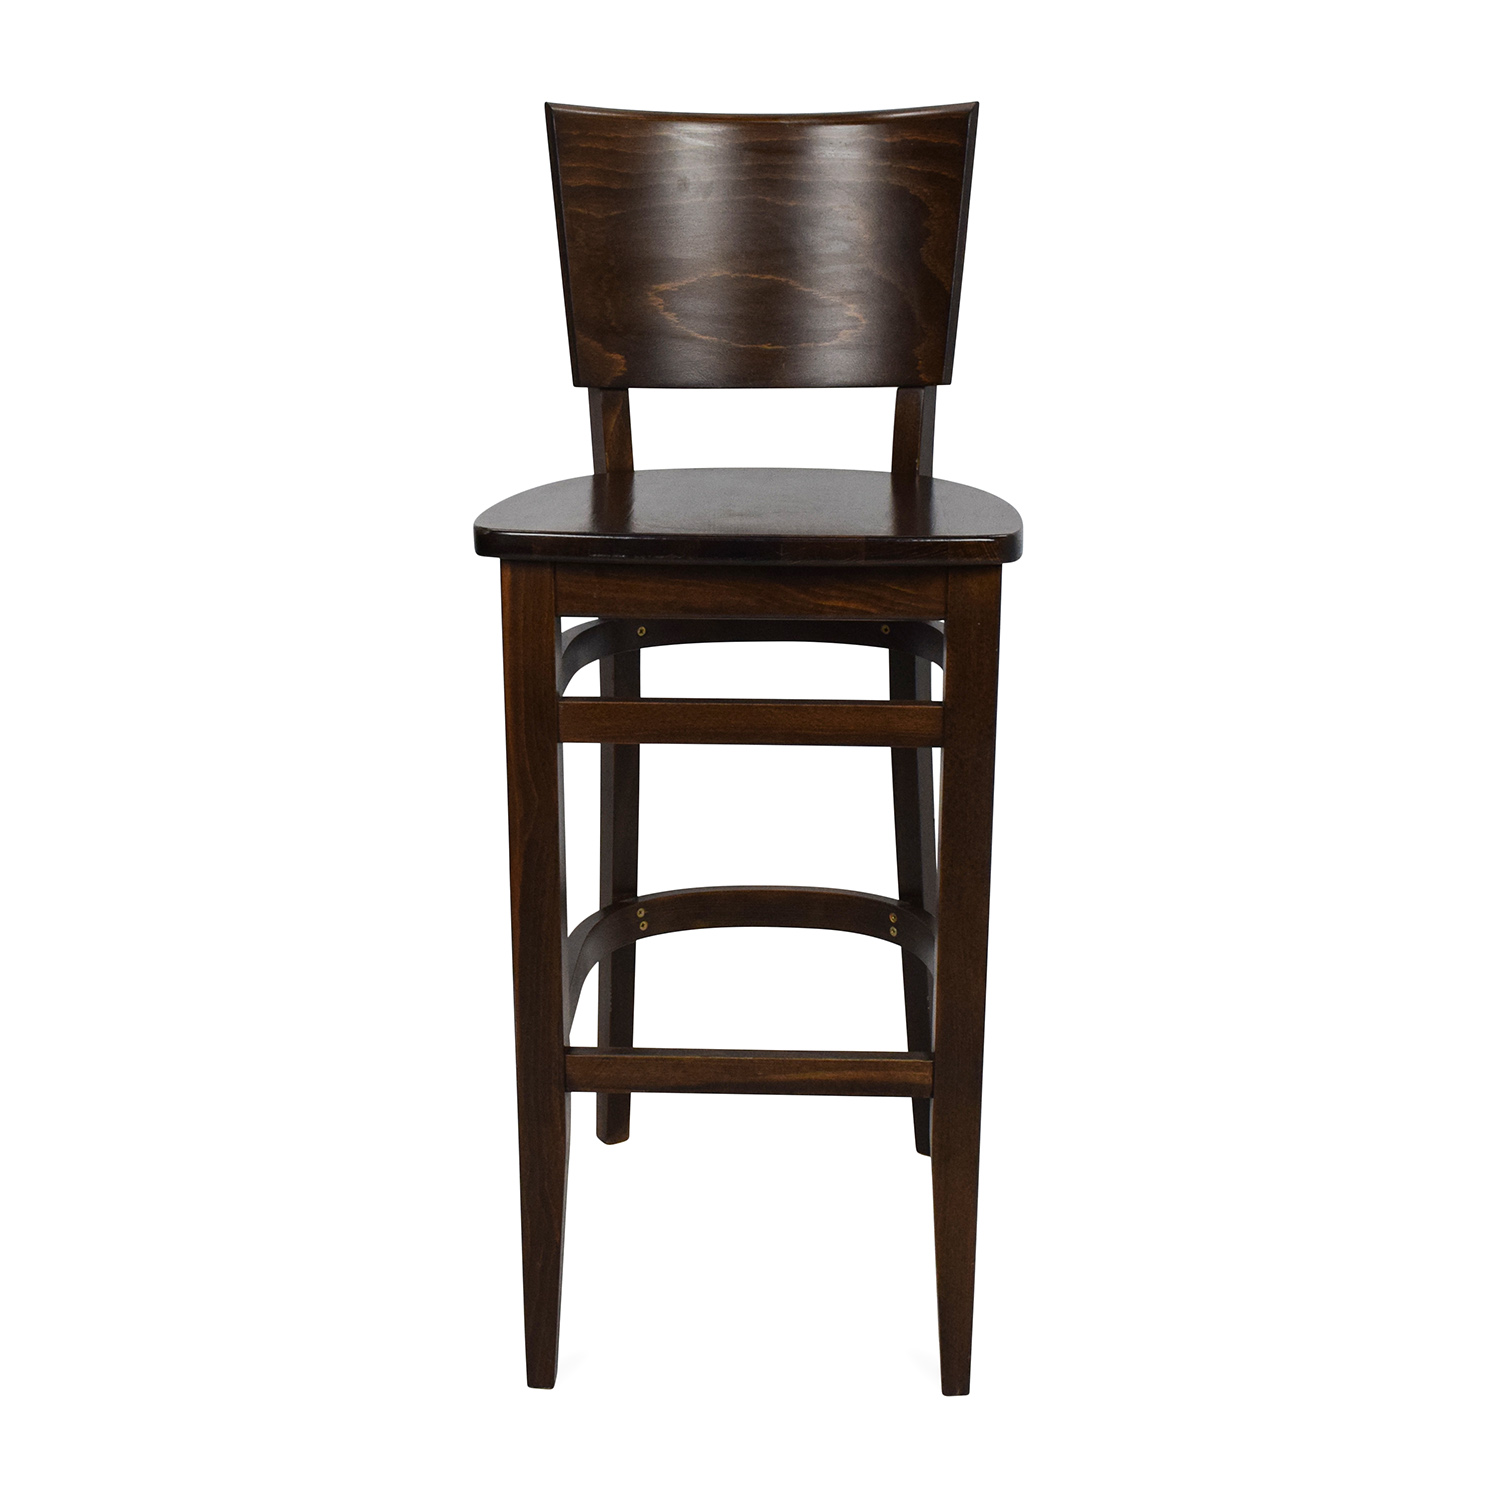 Design Within Reach (DWR) Design Within Reach Kyoto Bar Stool Price